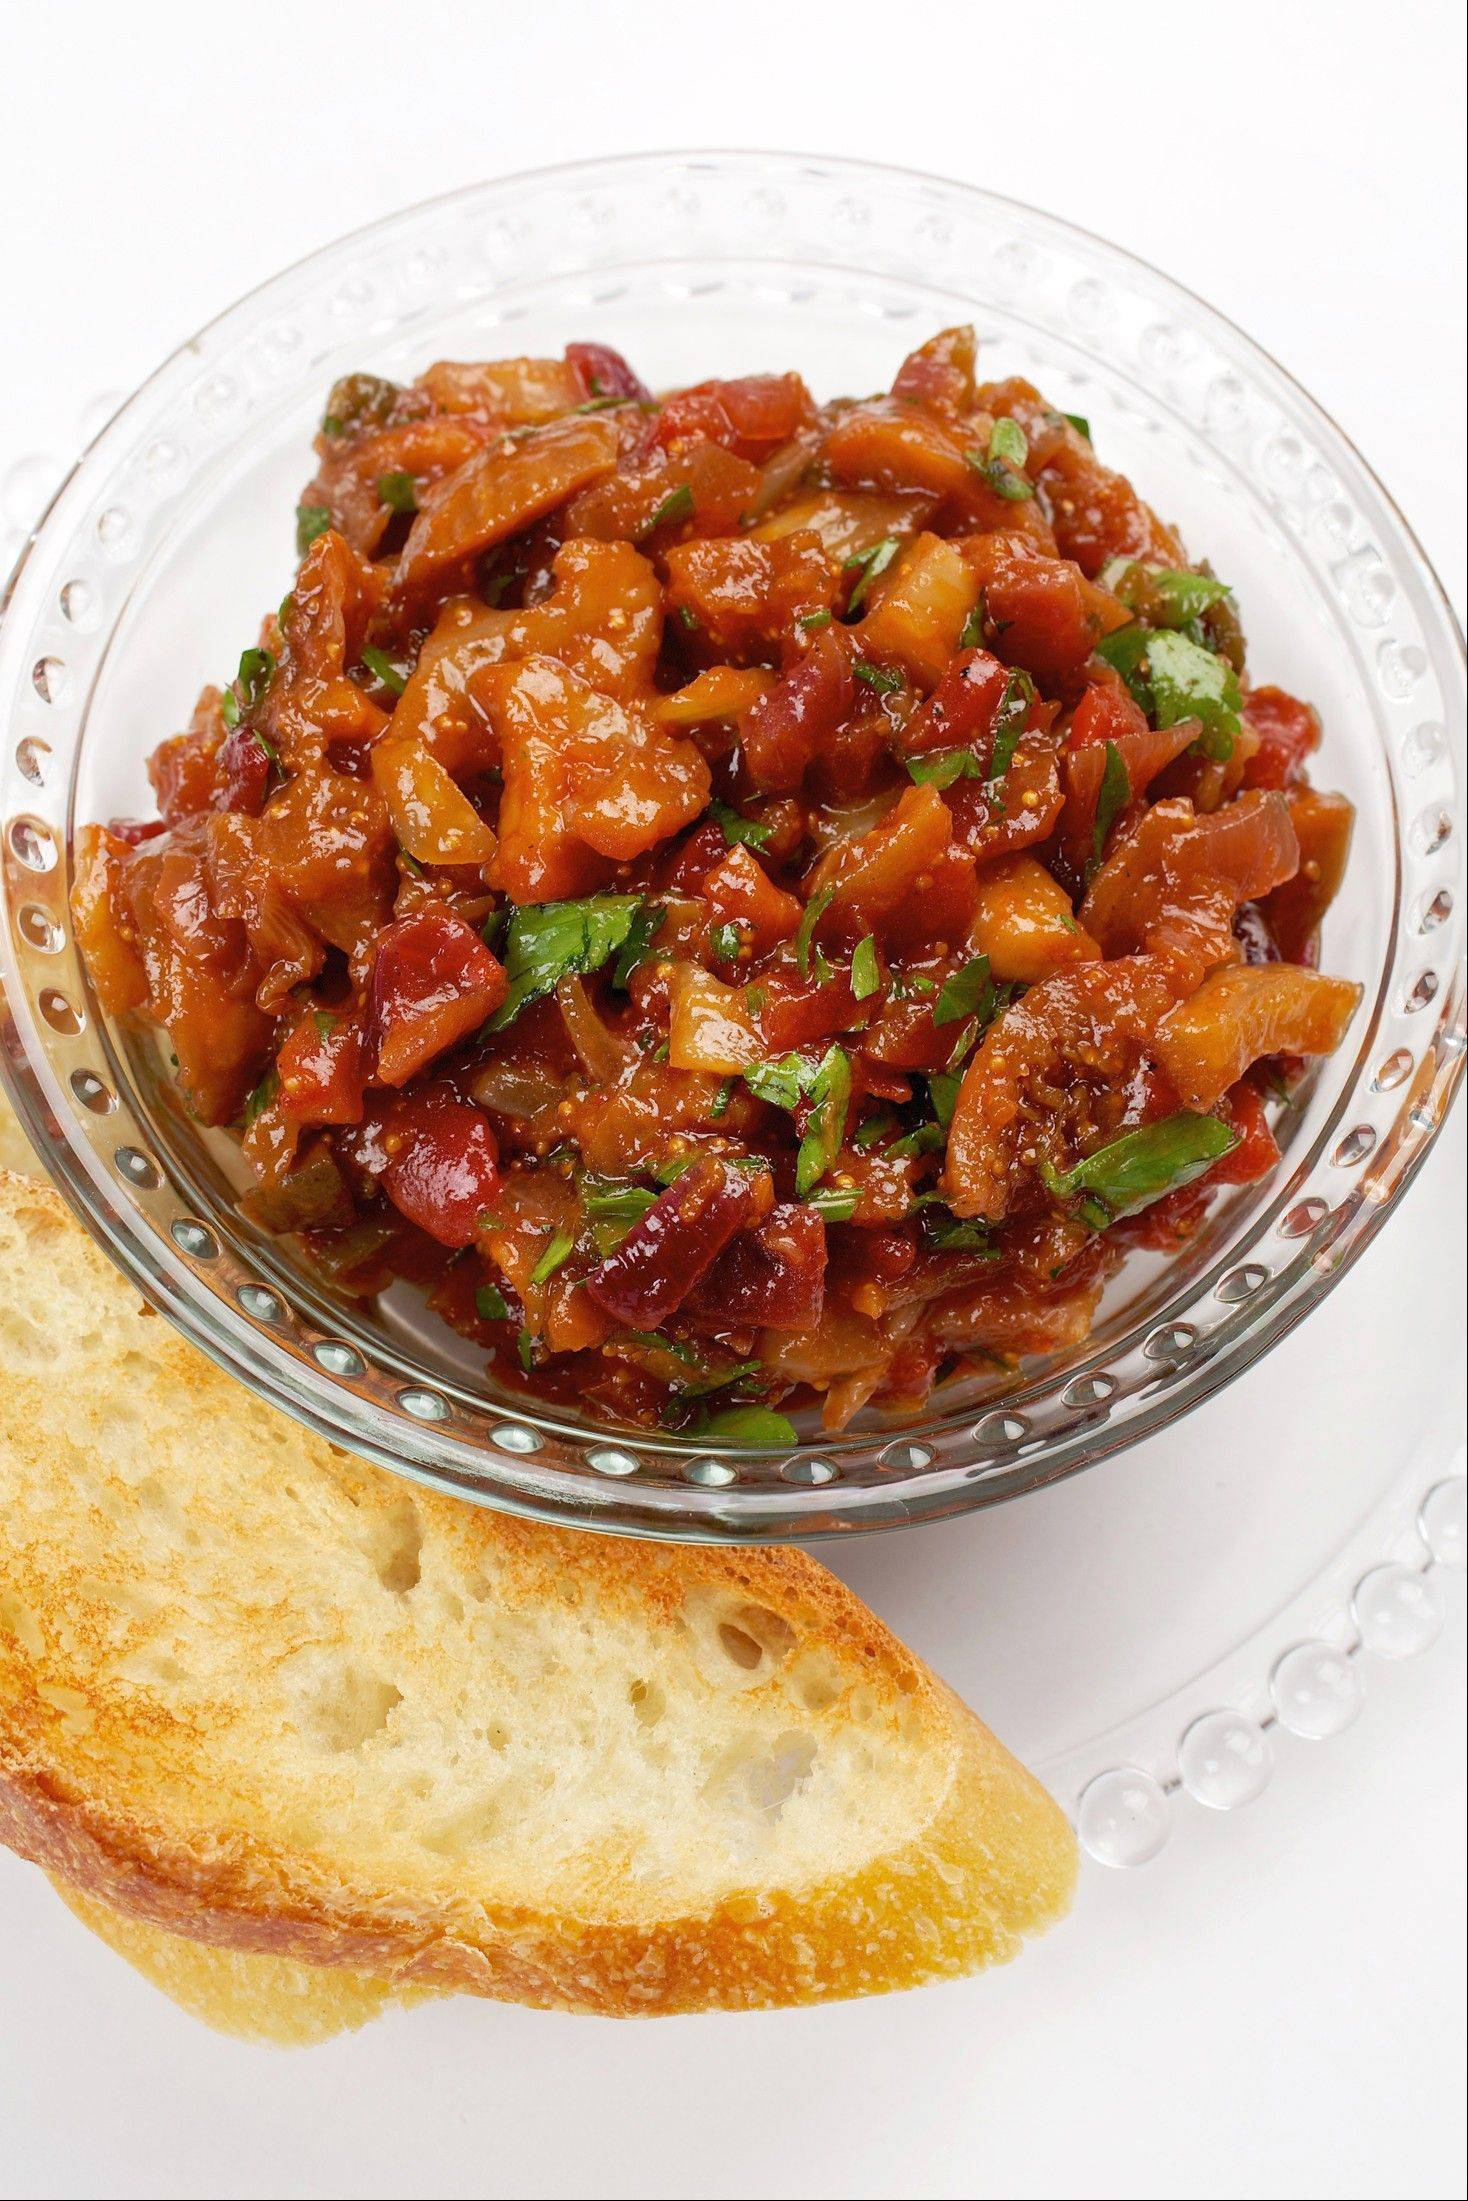 Fig and Fennel Caponata works as an appetizer or a topping for pork or fish.